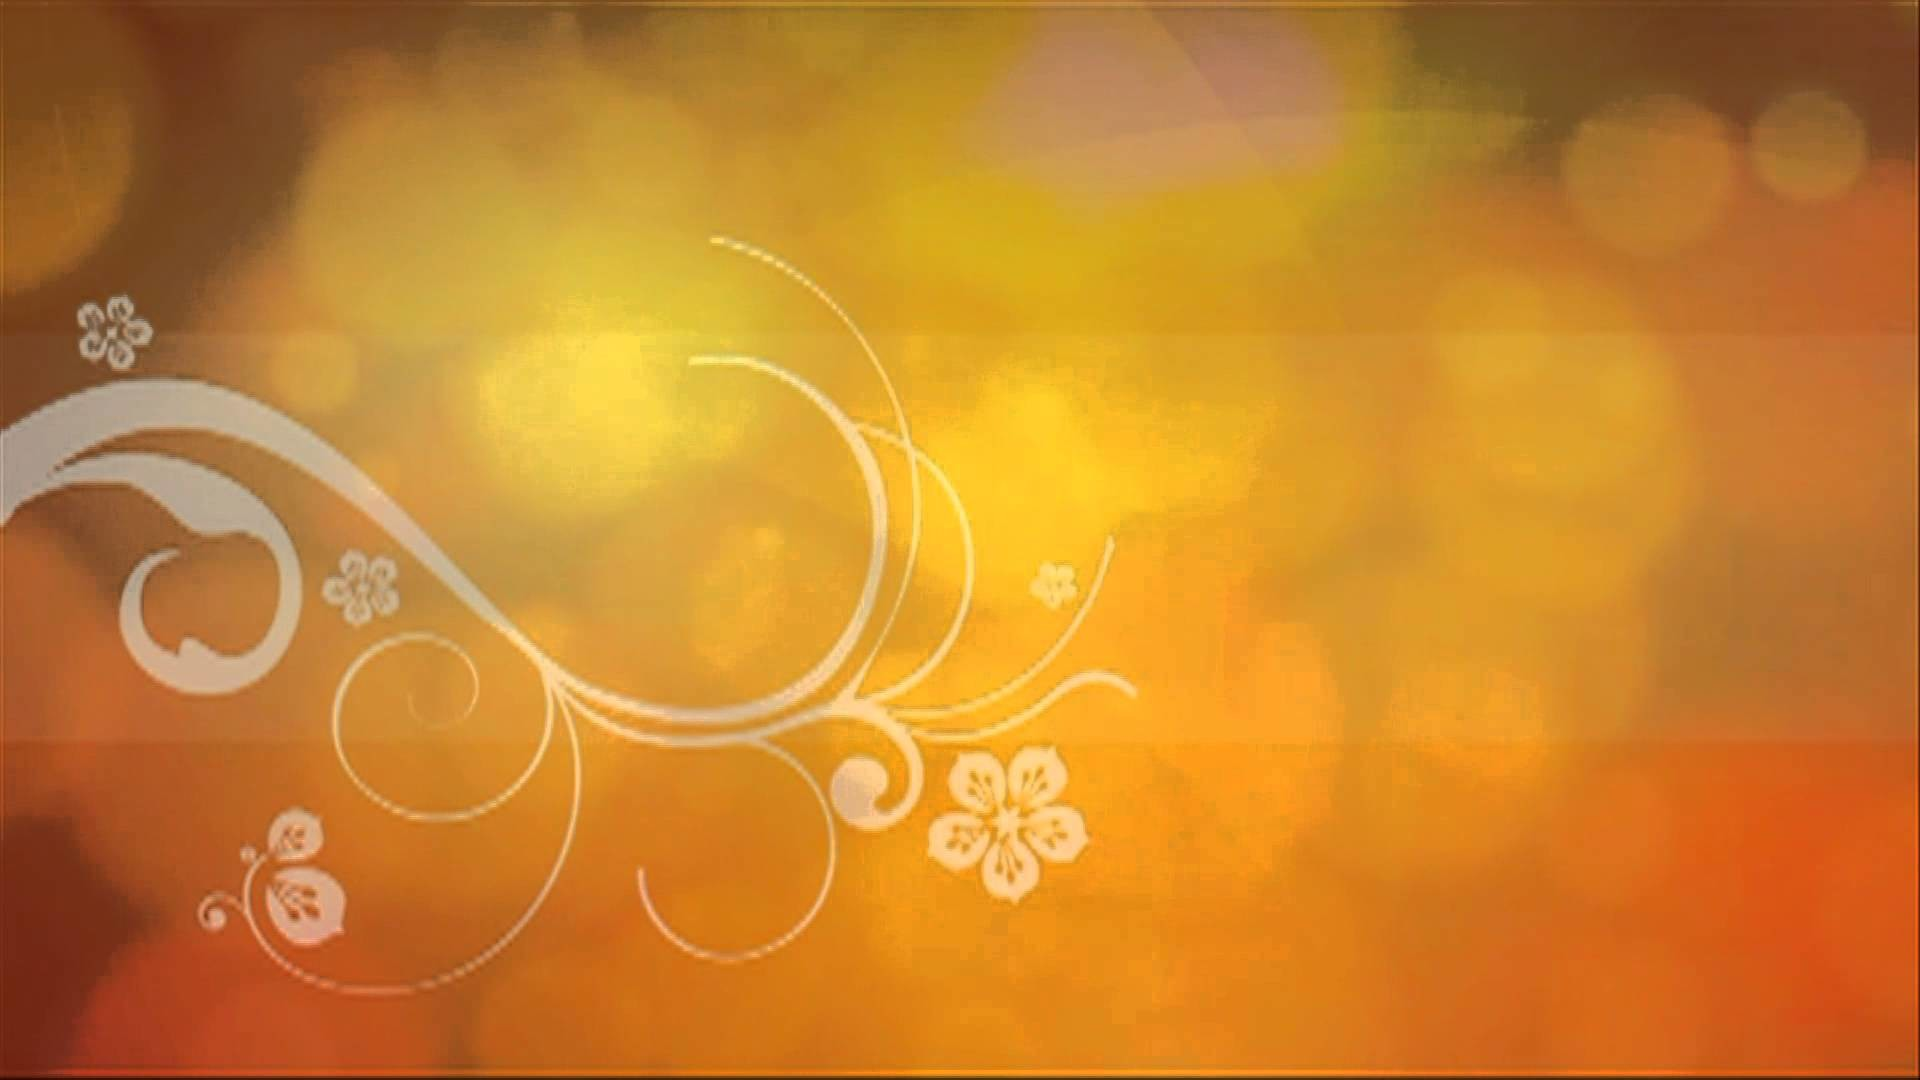 Wedding Backgrounds 57 Pictures